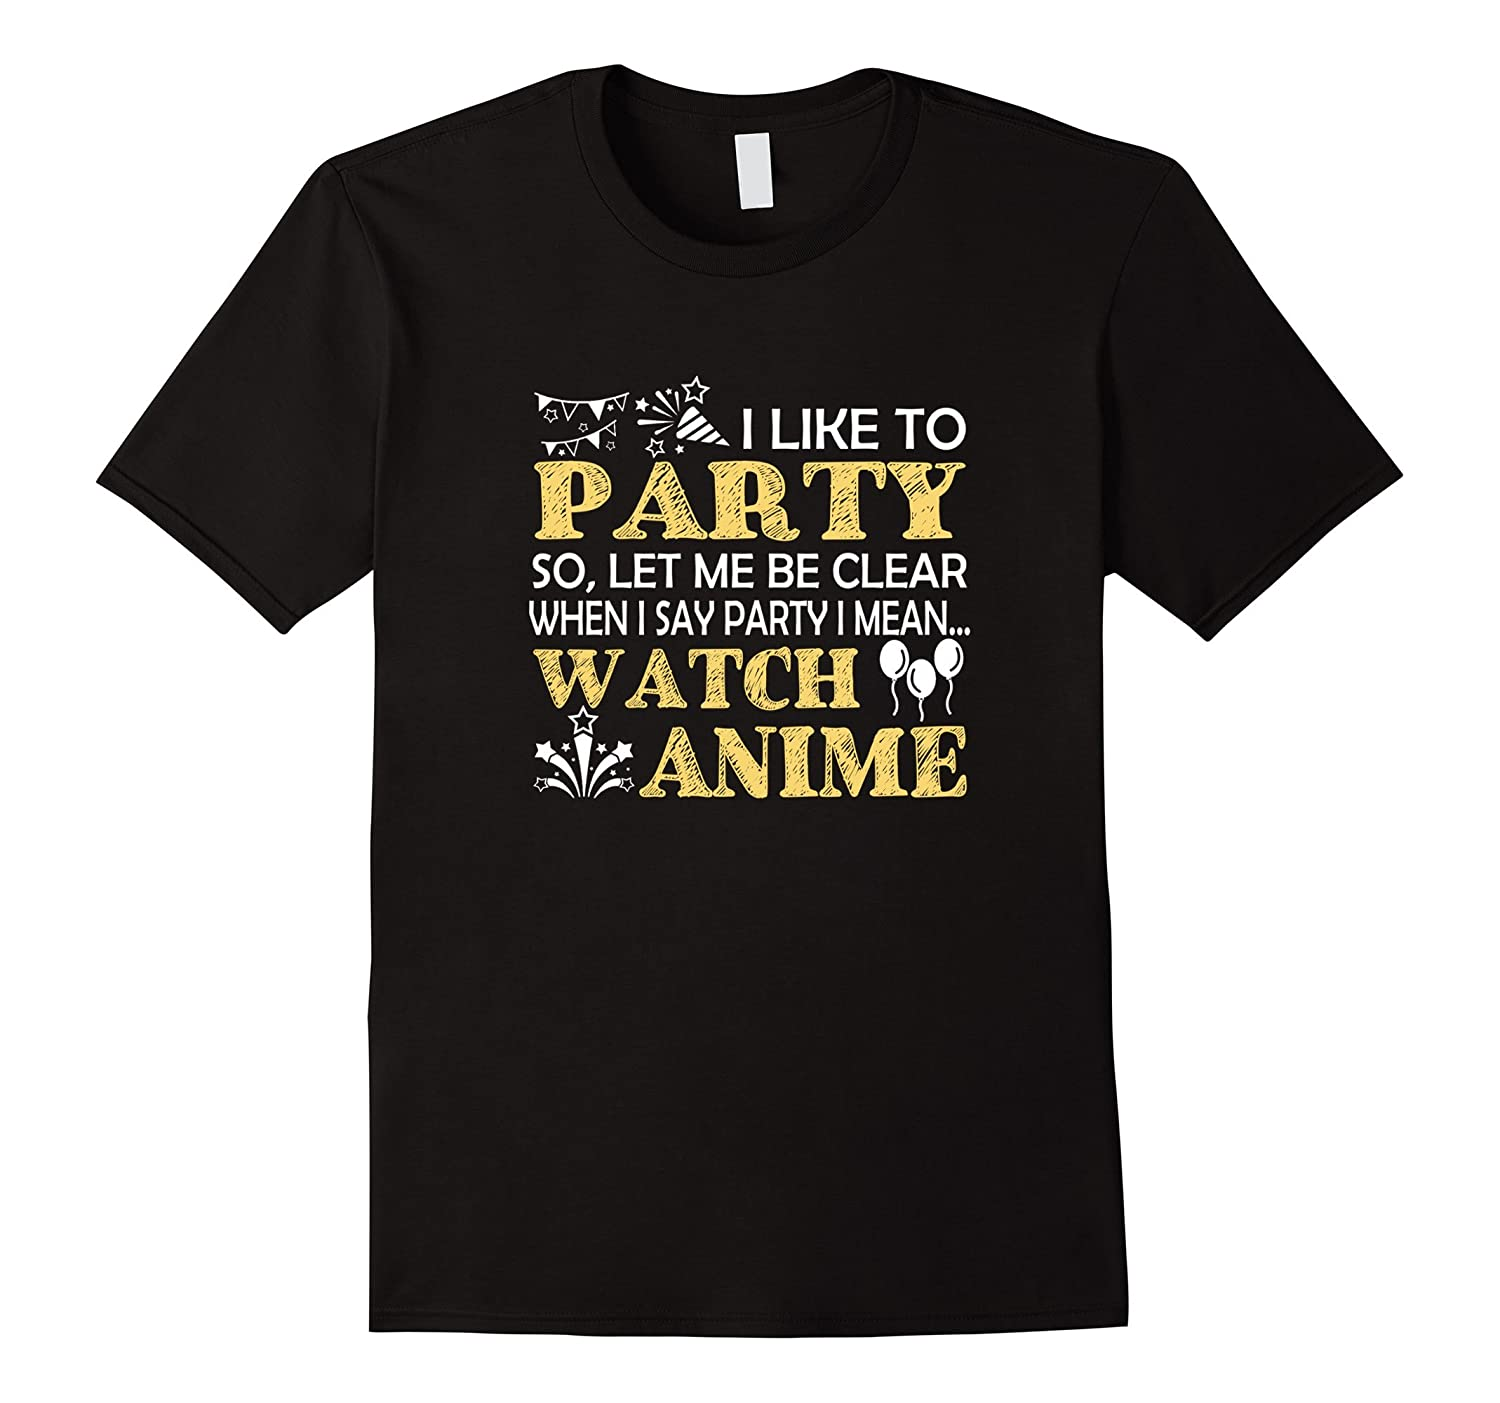 I Like To Party Let Me Be Clear I Say Party Mean Watch Anime-Vaci